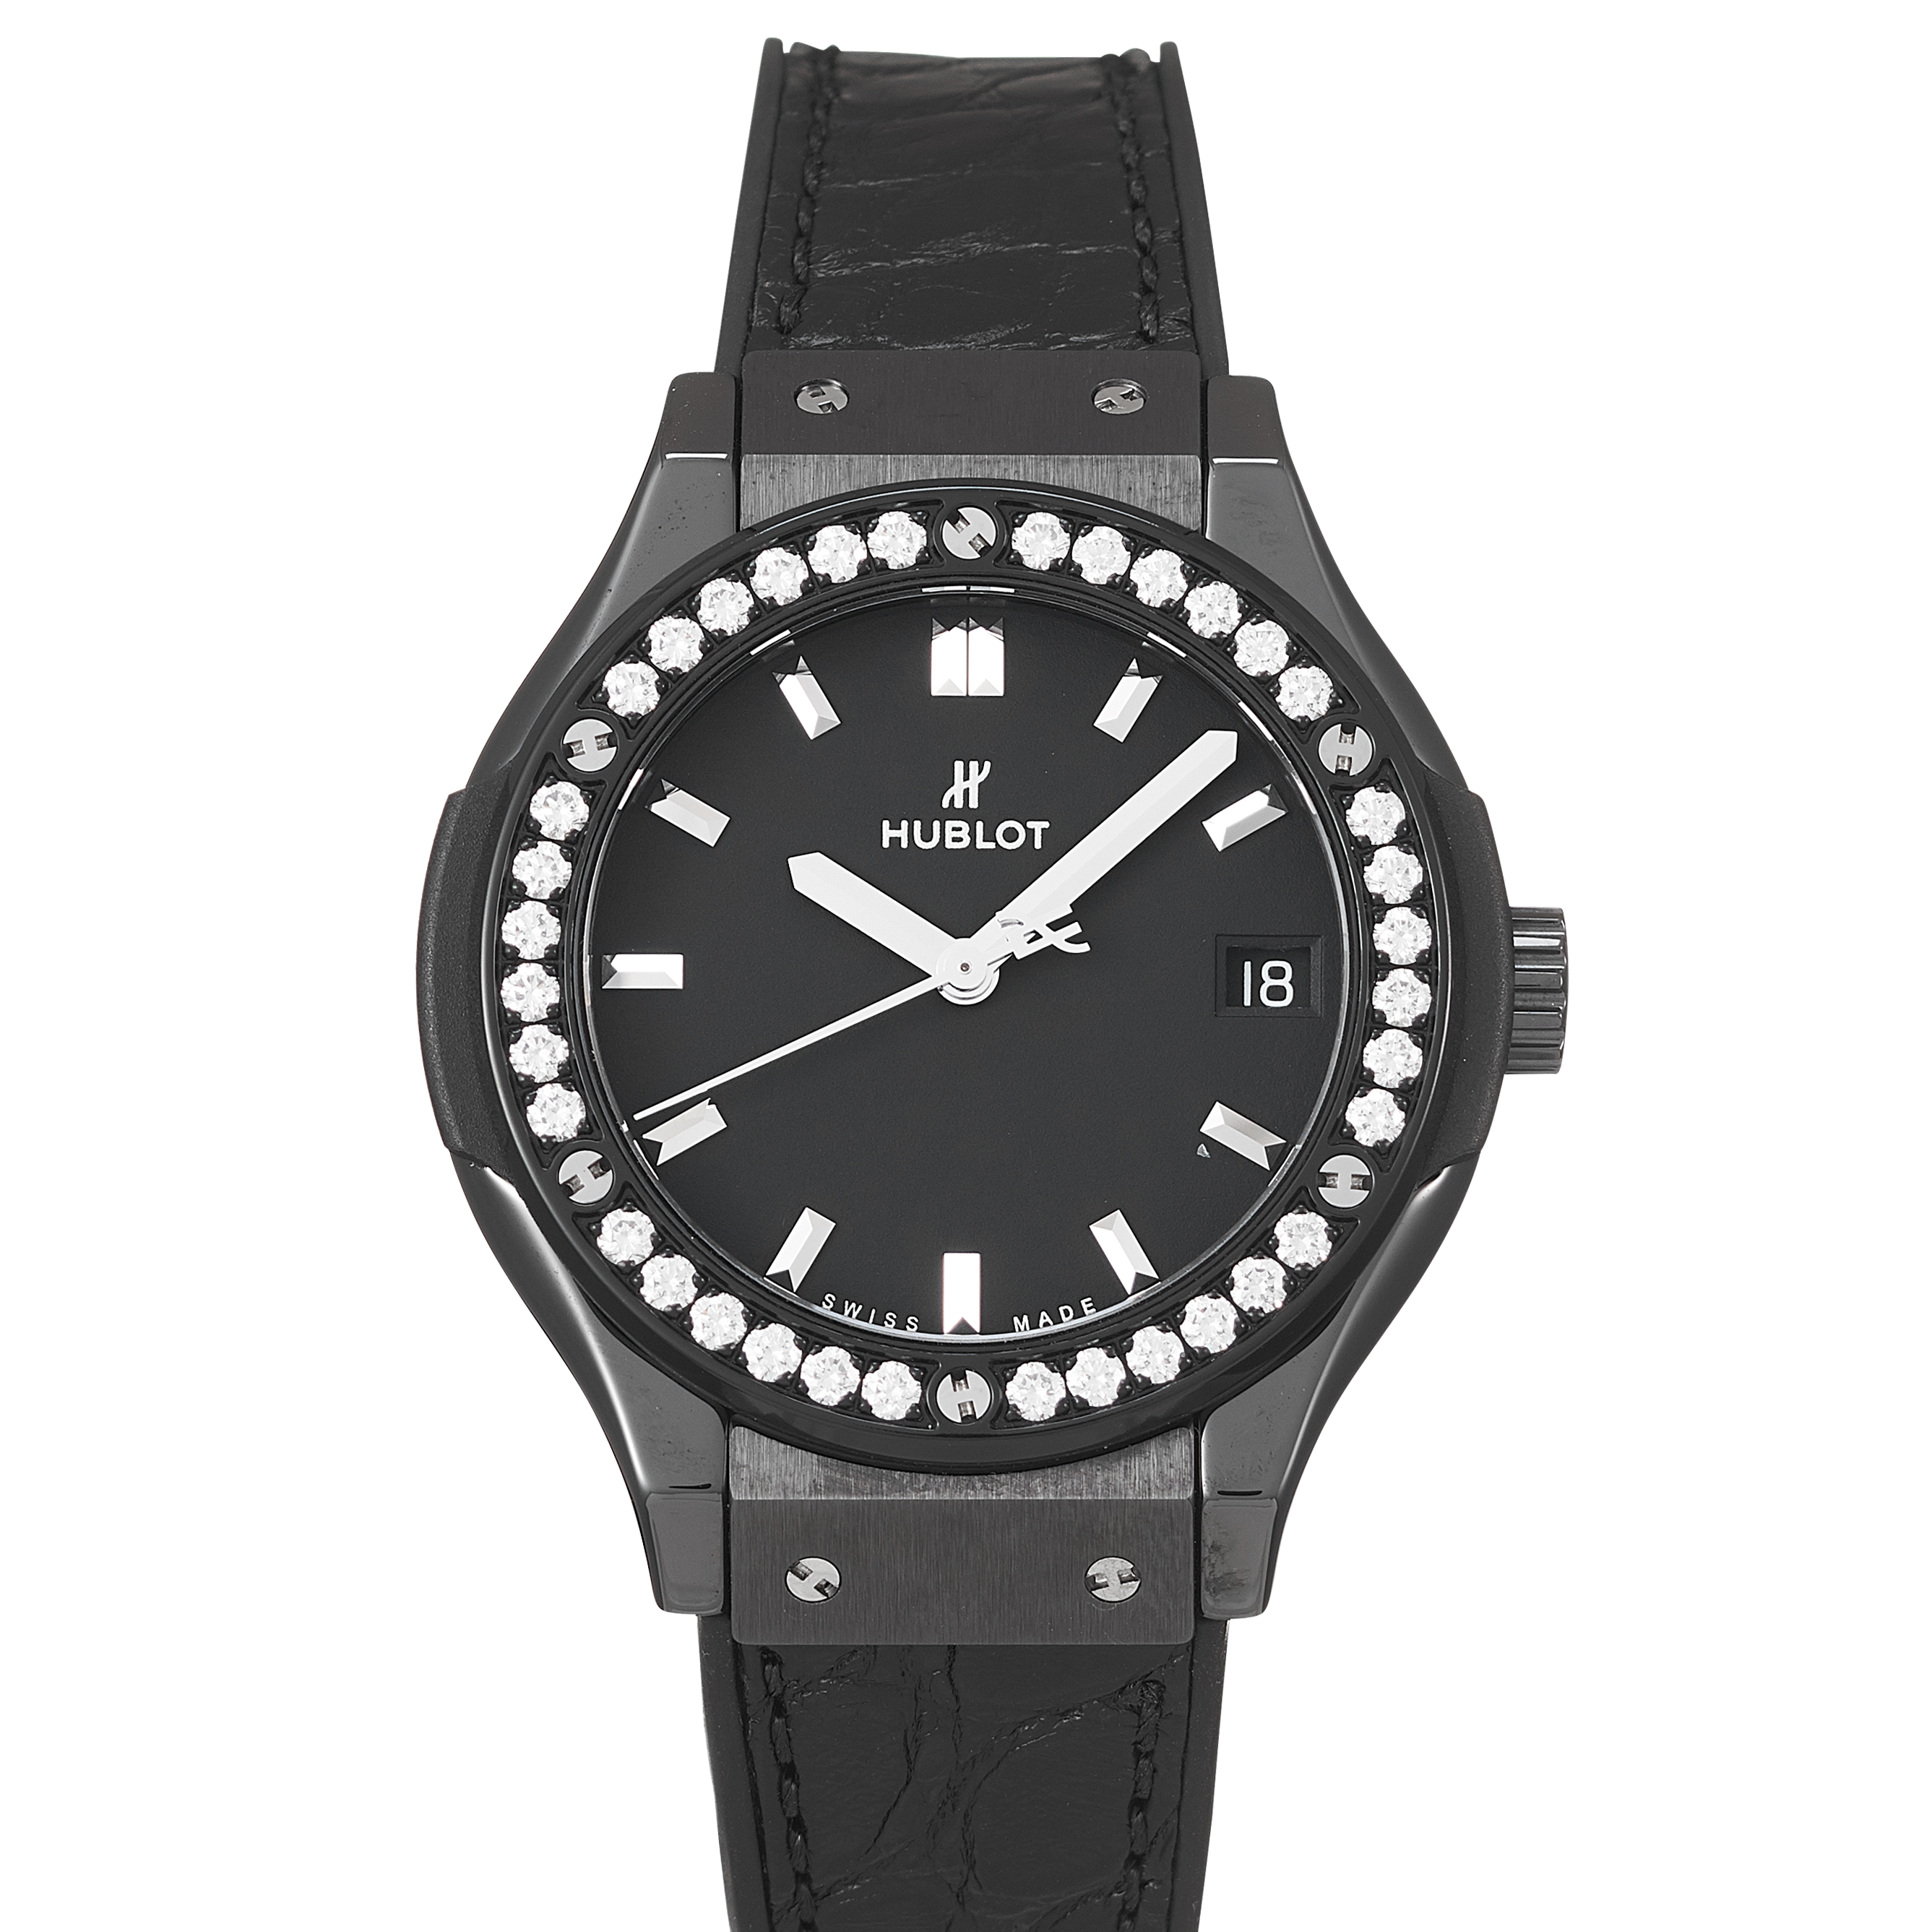 Hublot Classic Fusion Black Magic Ceramic - 581.CM.1171.LR.1104